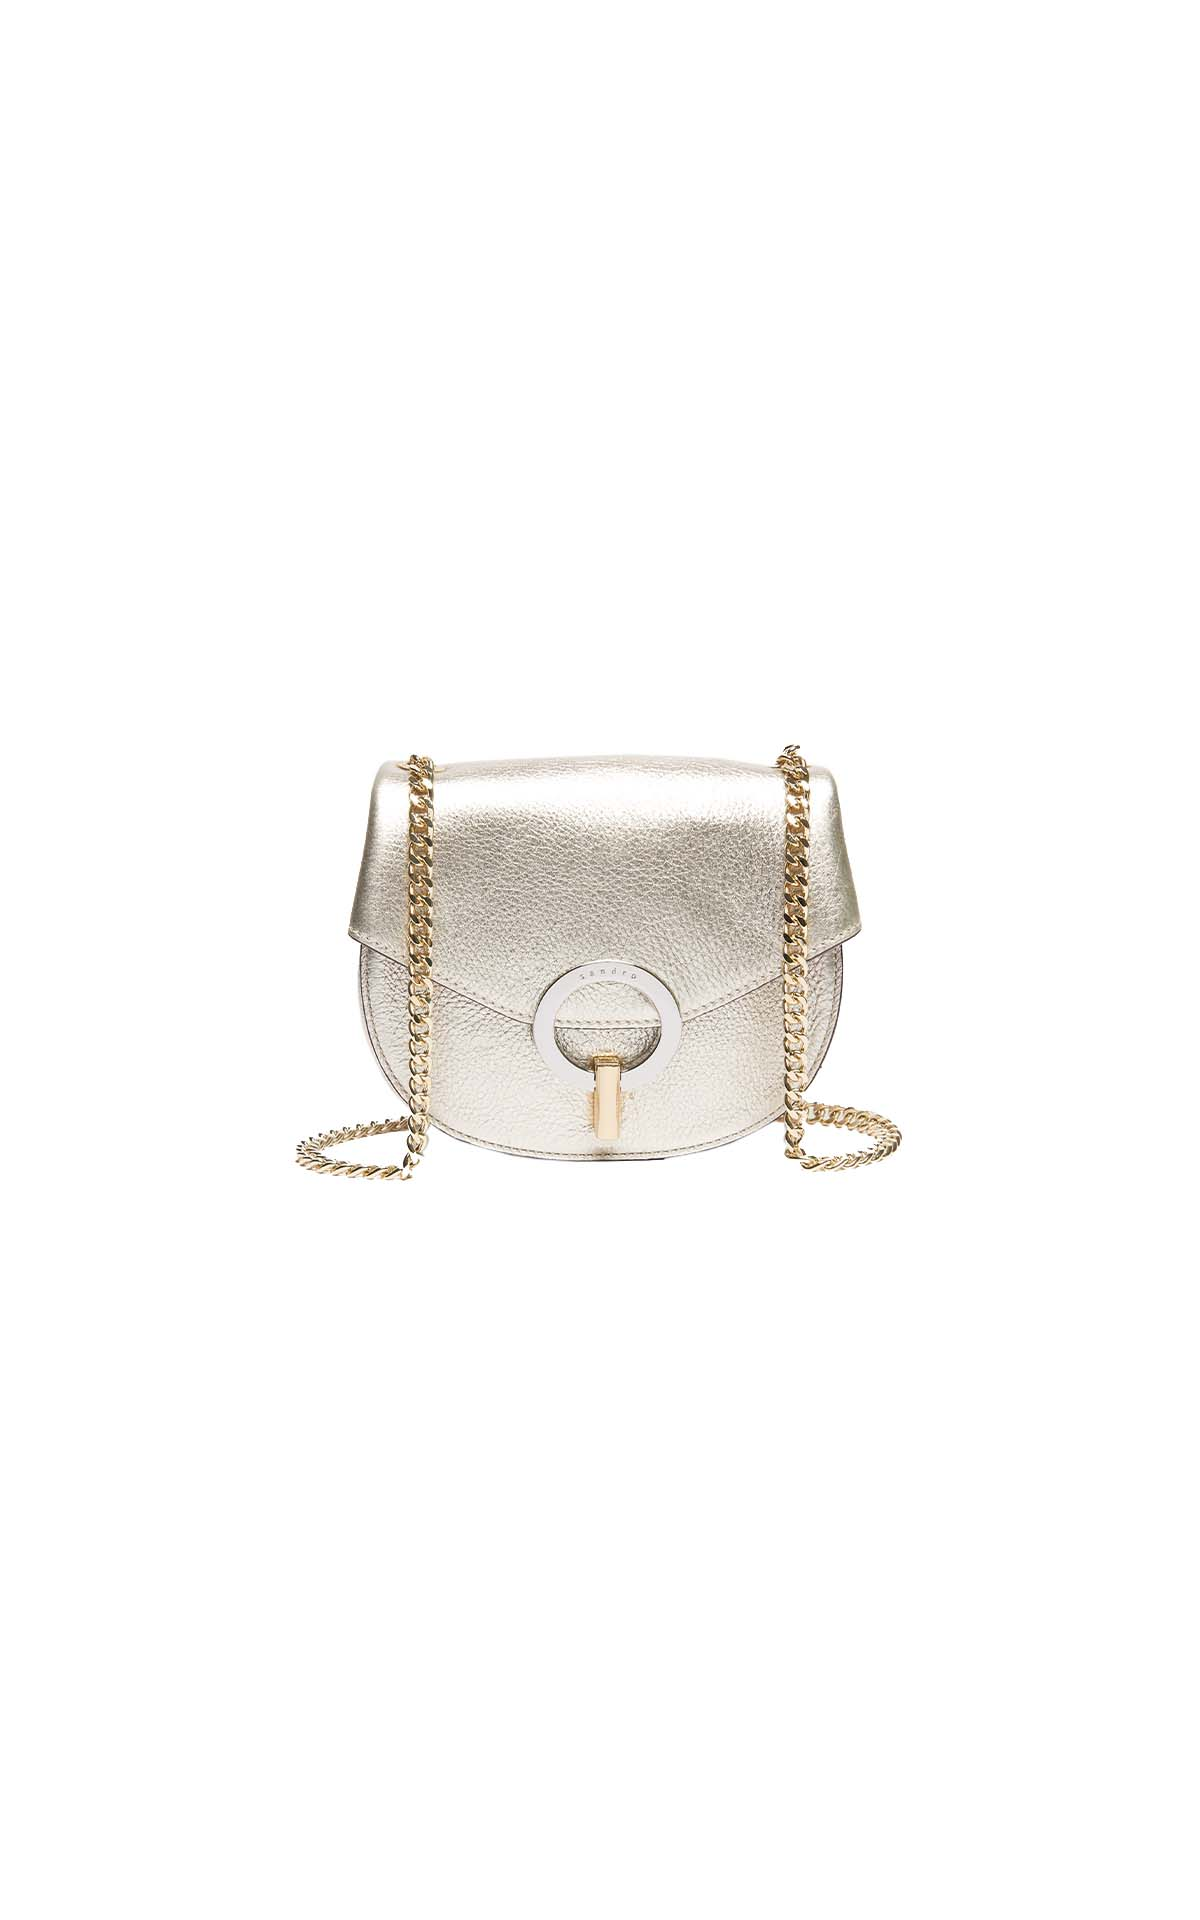 Sandro pepita cross-body bag at The Bicester Village Shopping Collection